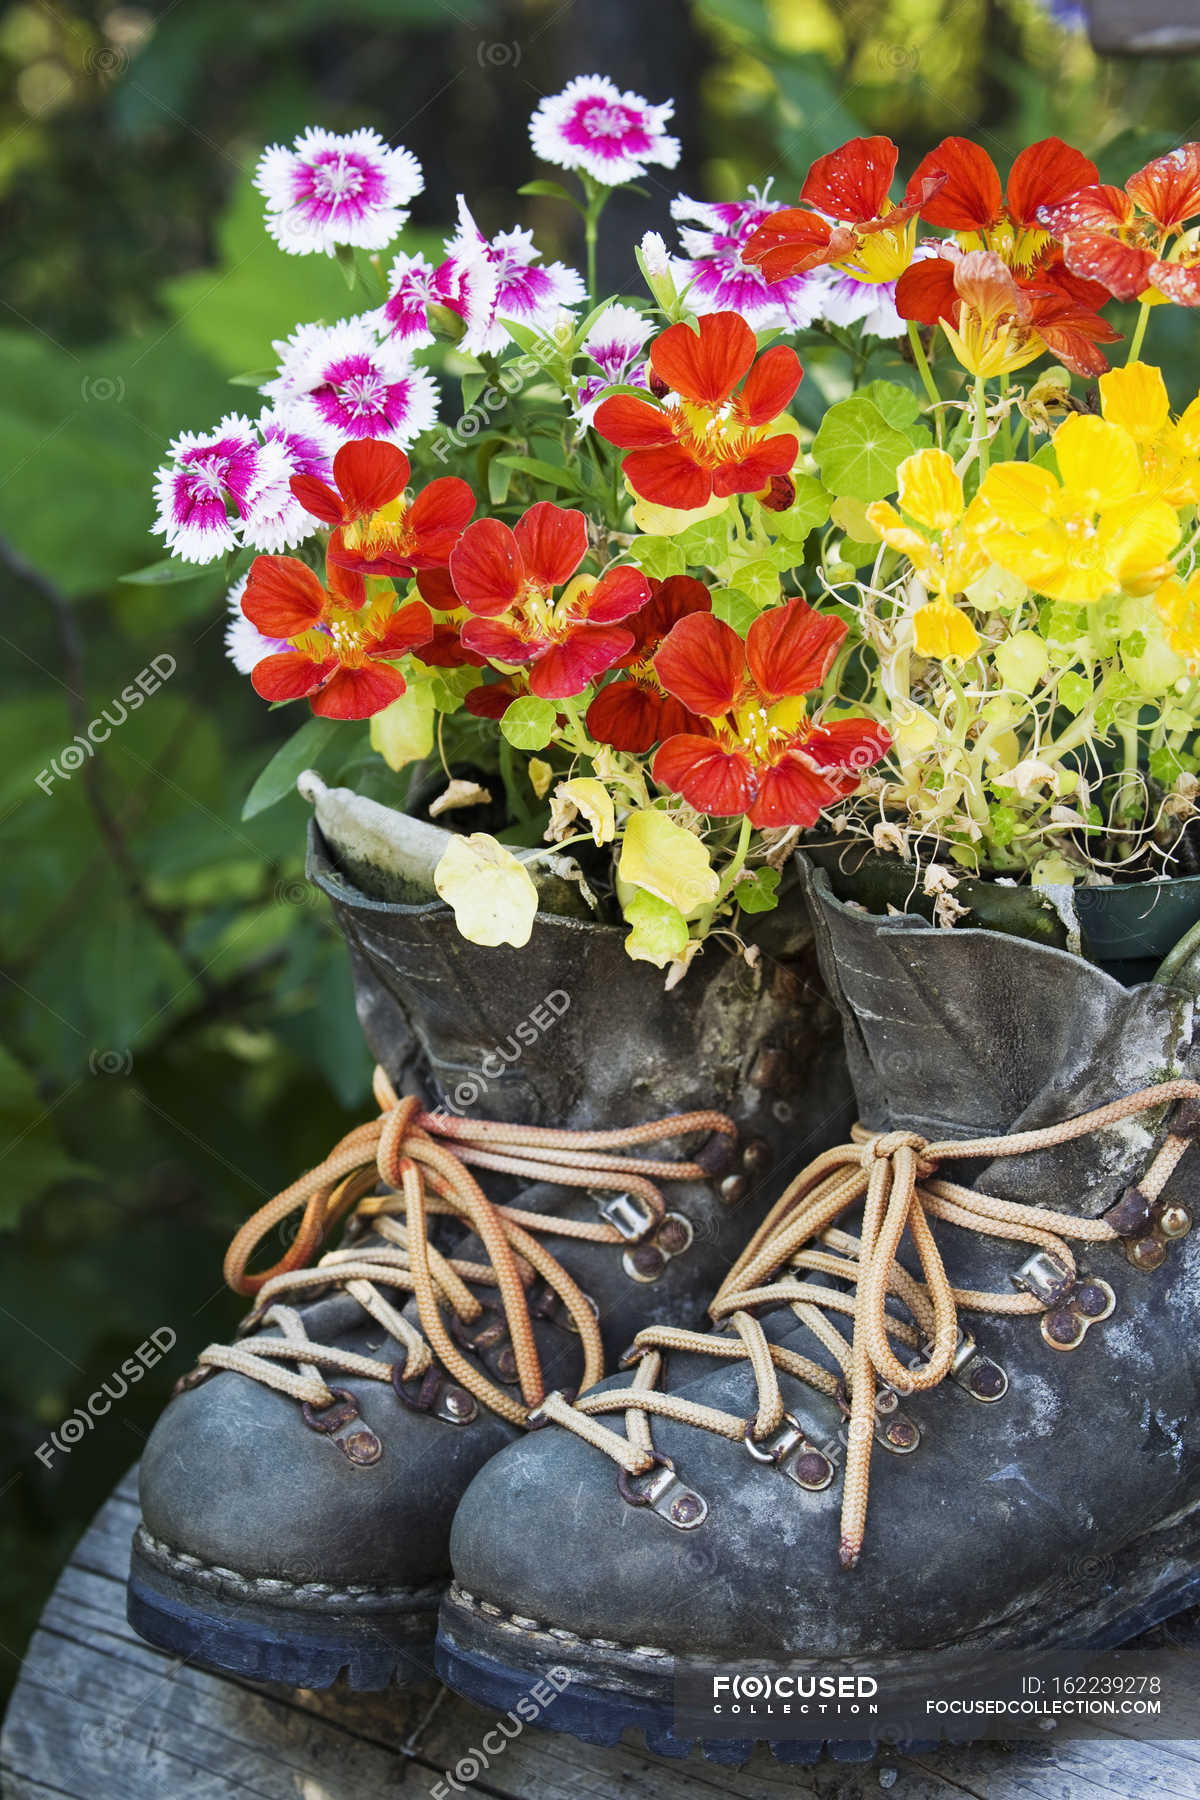 Flowers growing in boots — ornament